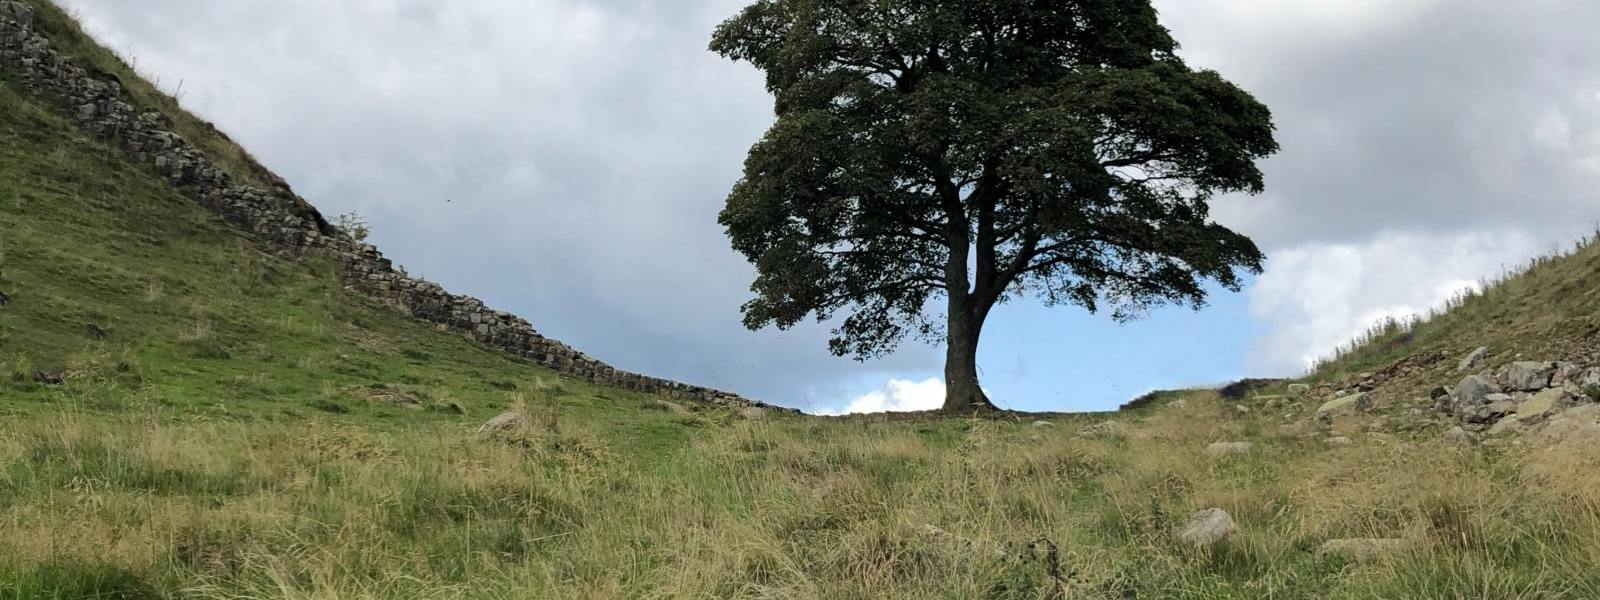 Steel Rigg and Sycamore Gap family-friendly walk